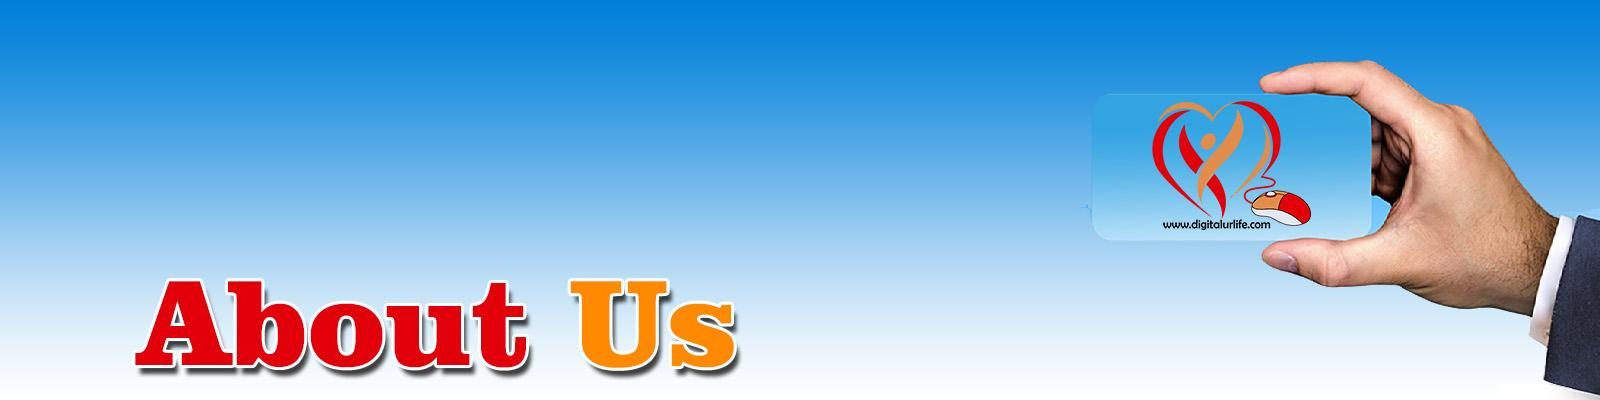 Banner for About Us